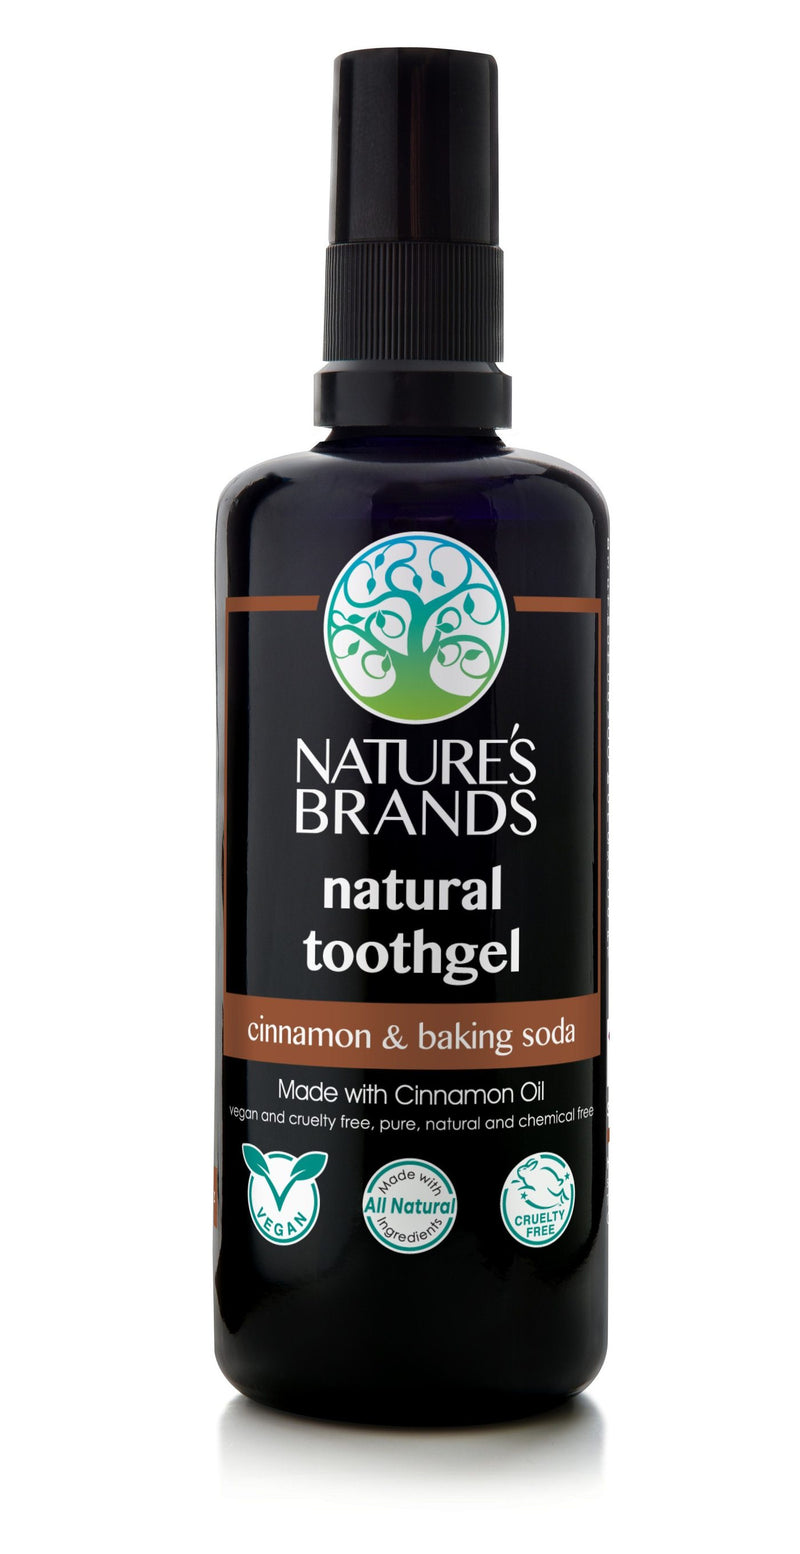 Herbal Choice Mari Natural Toothgel - Herbal Choice Mari Natural Toothgel - Herbal Choice Mari Natural Toothgel